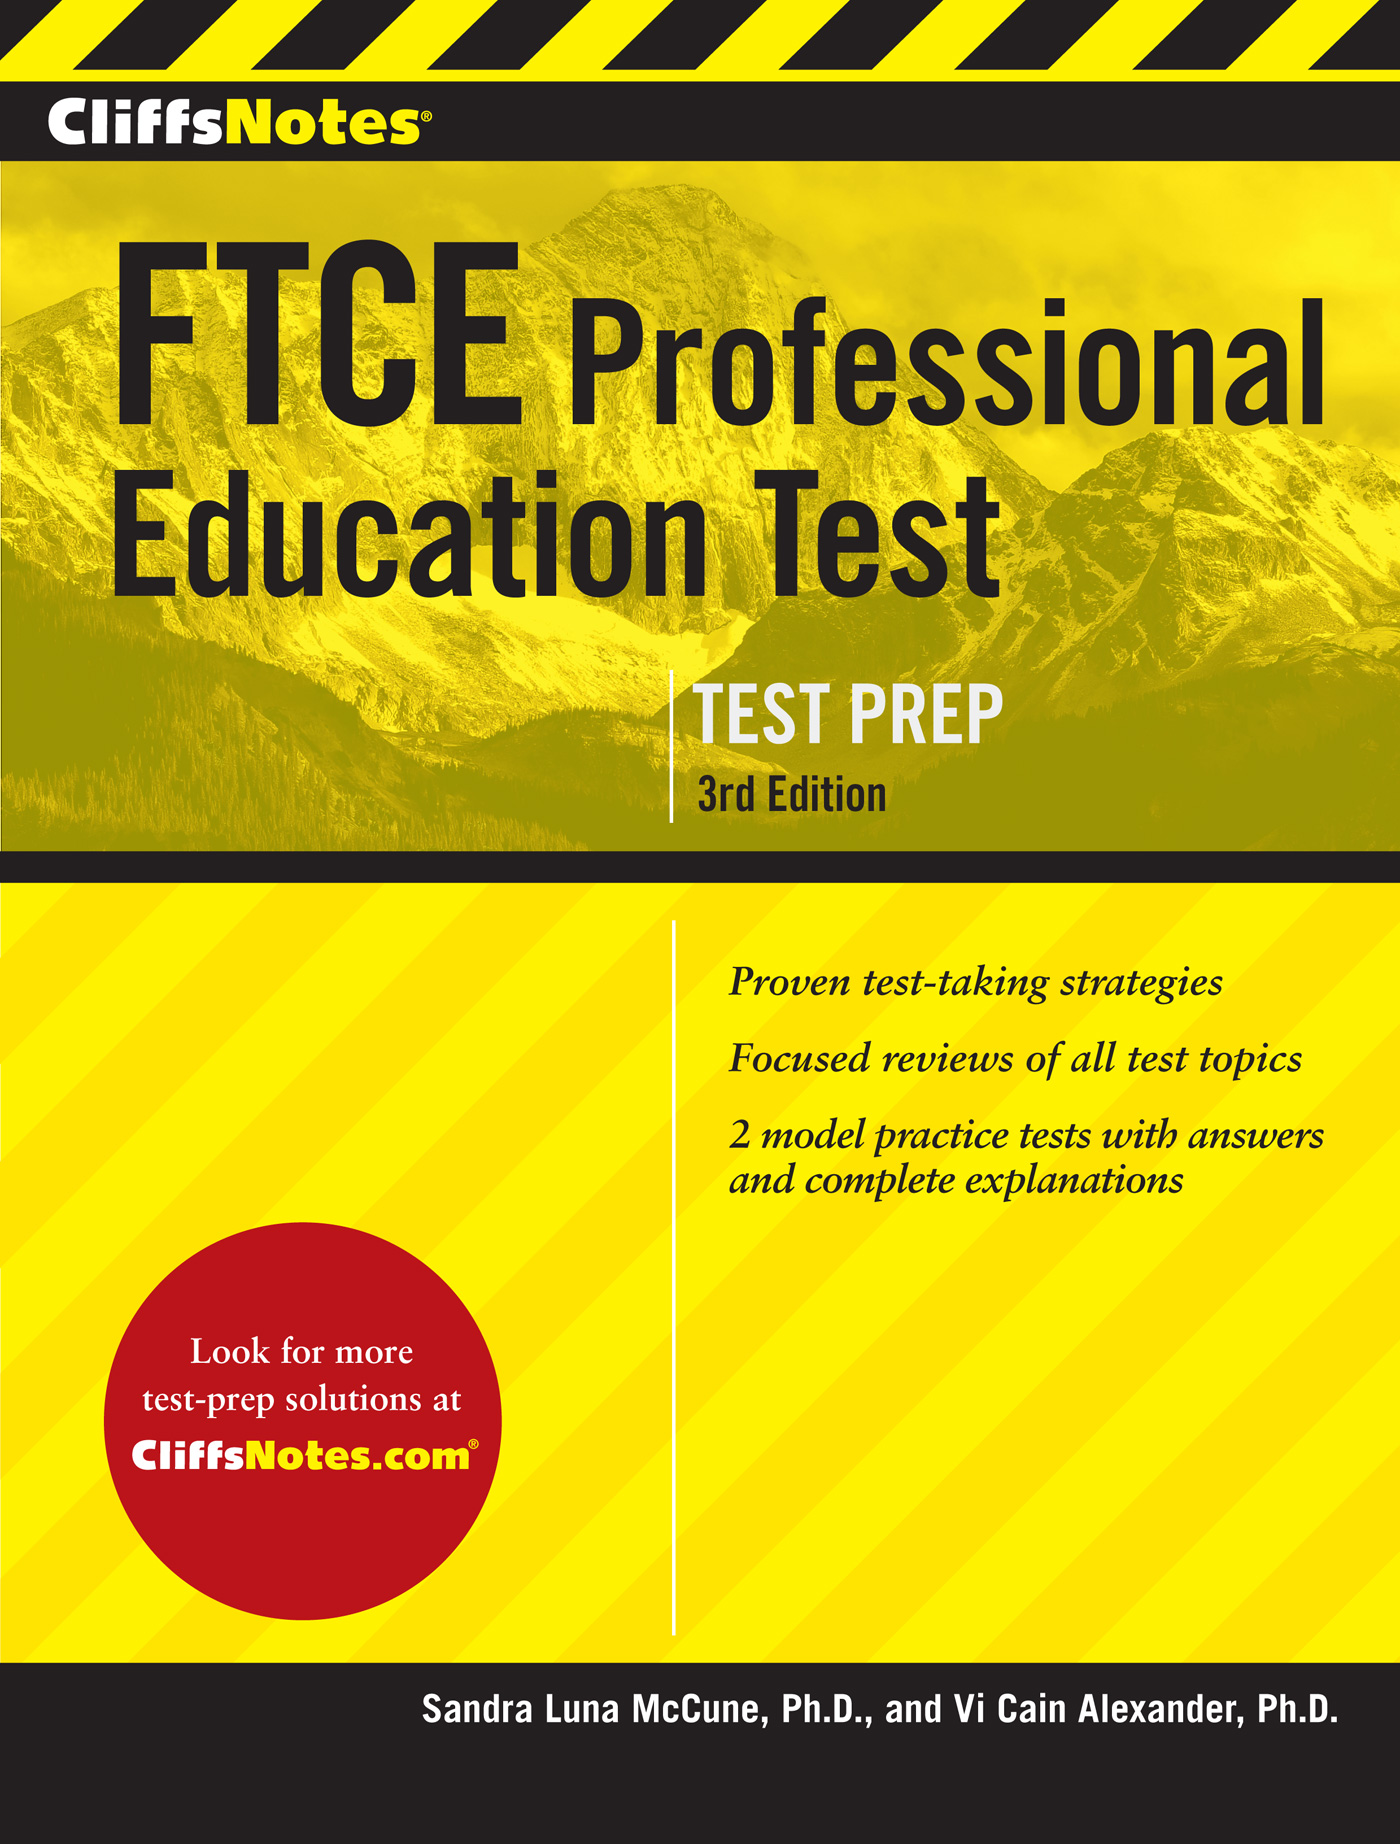 CliffsNotes FTCE Professional Education Test, 3rd Edition-9780544230583